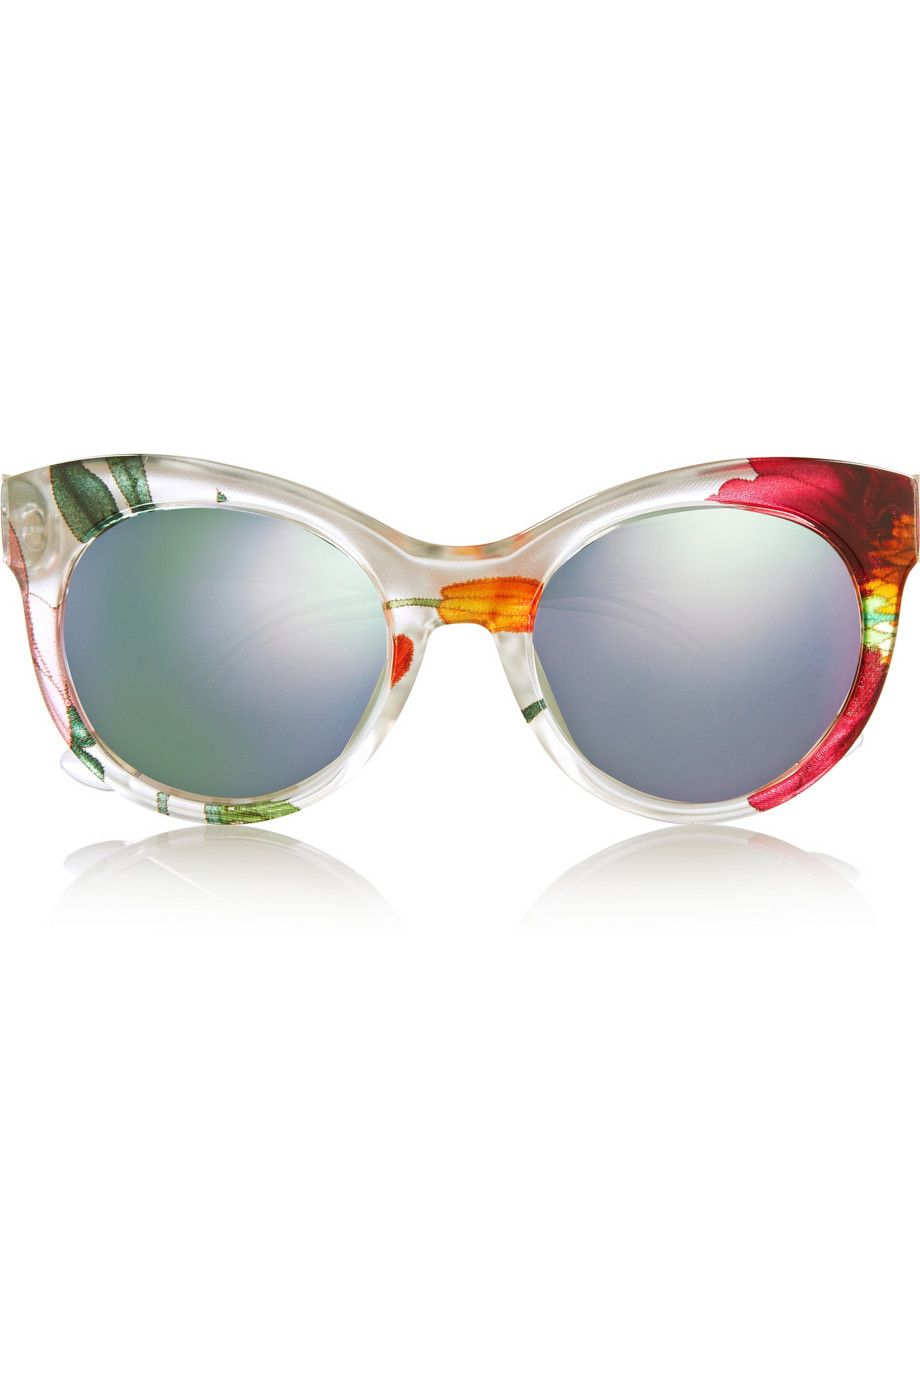 Gucci - Cat-eye printed acetate and metal mirrored sunglasses